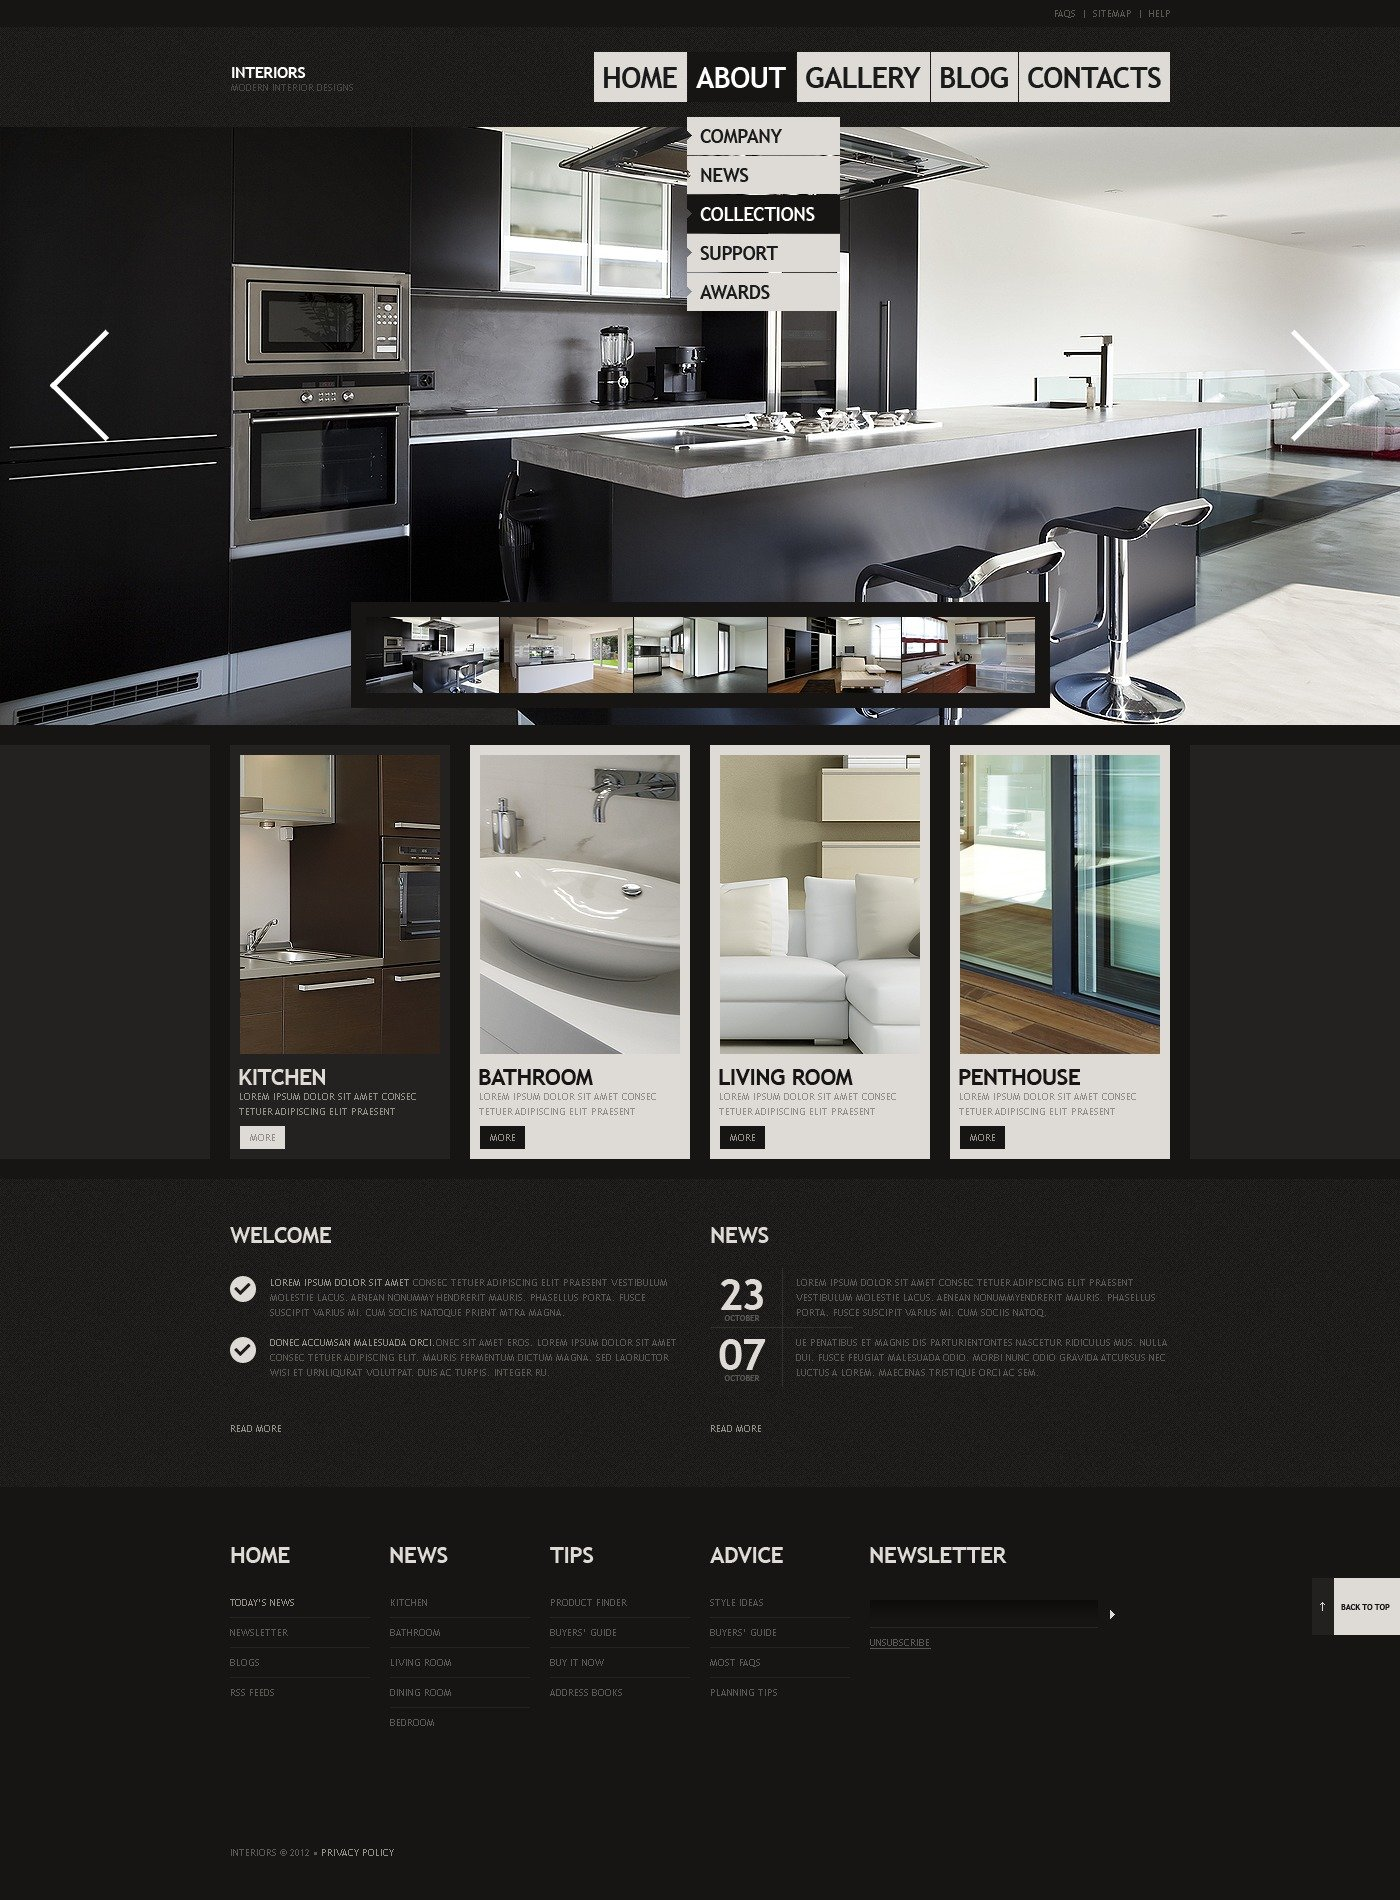 Interior design website template 40455 for Interior decorating ideas websites